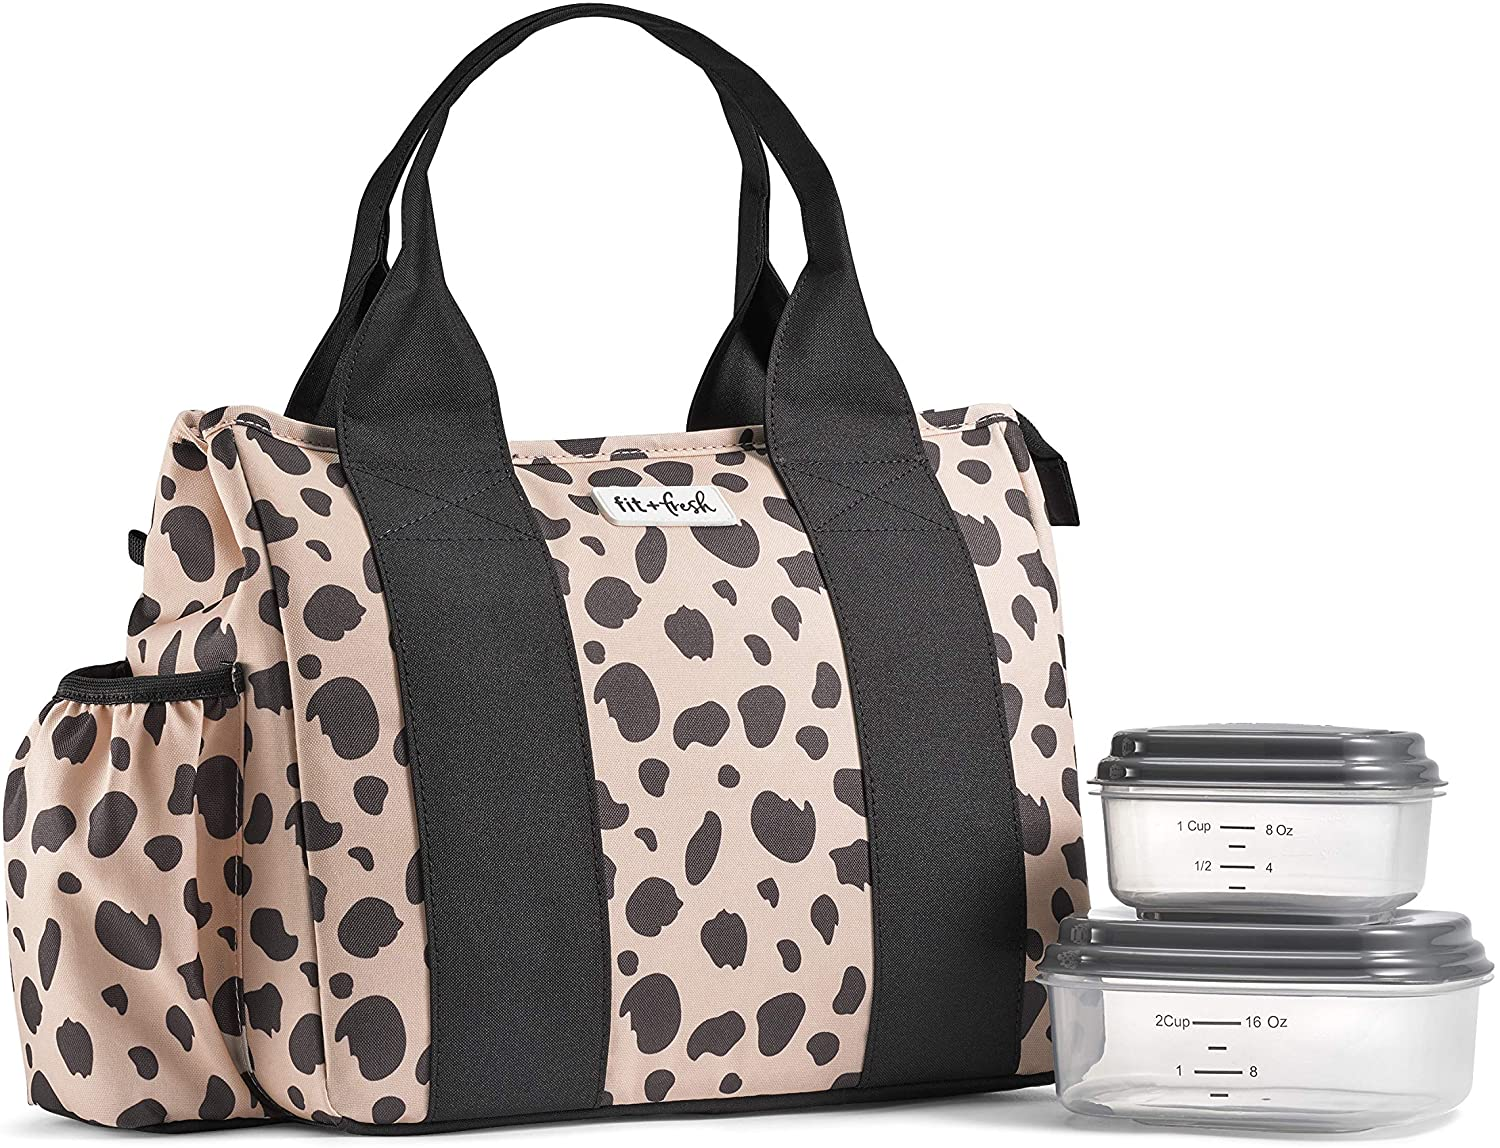 Fit & Fresh Sanibel Two Containers, Cooler, Large Tote, Insulated Box, Thermal Water Bottle Holder, Lunch Bag for Women, Picnic, School, Work (Cheetah)